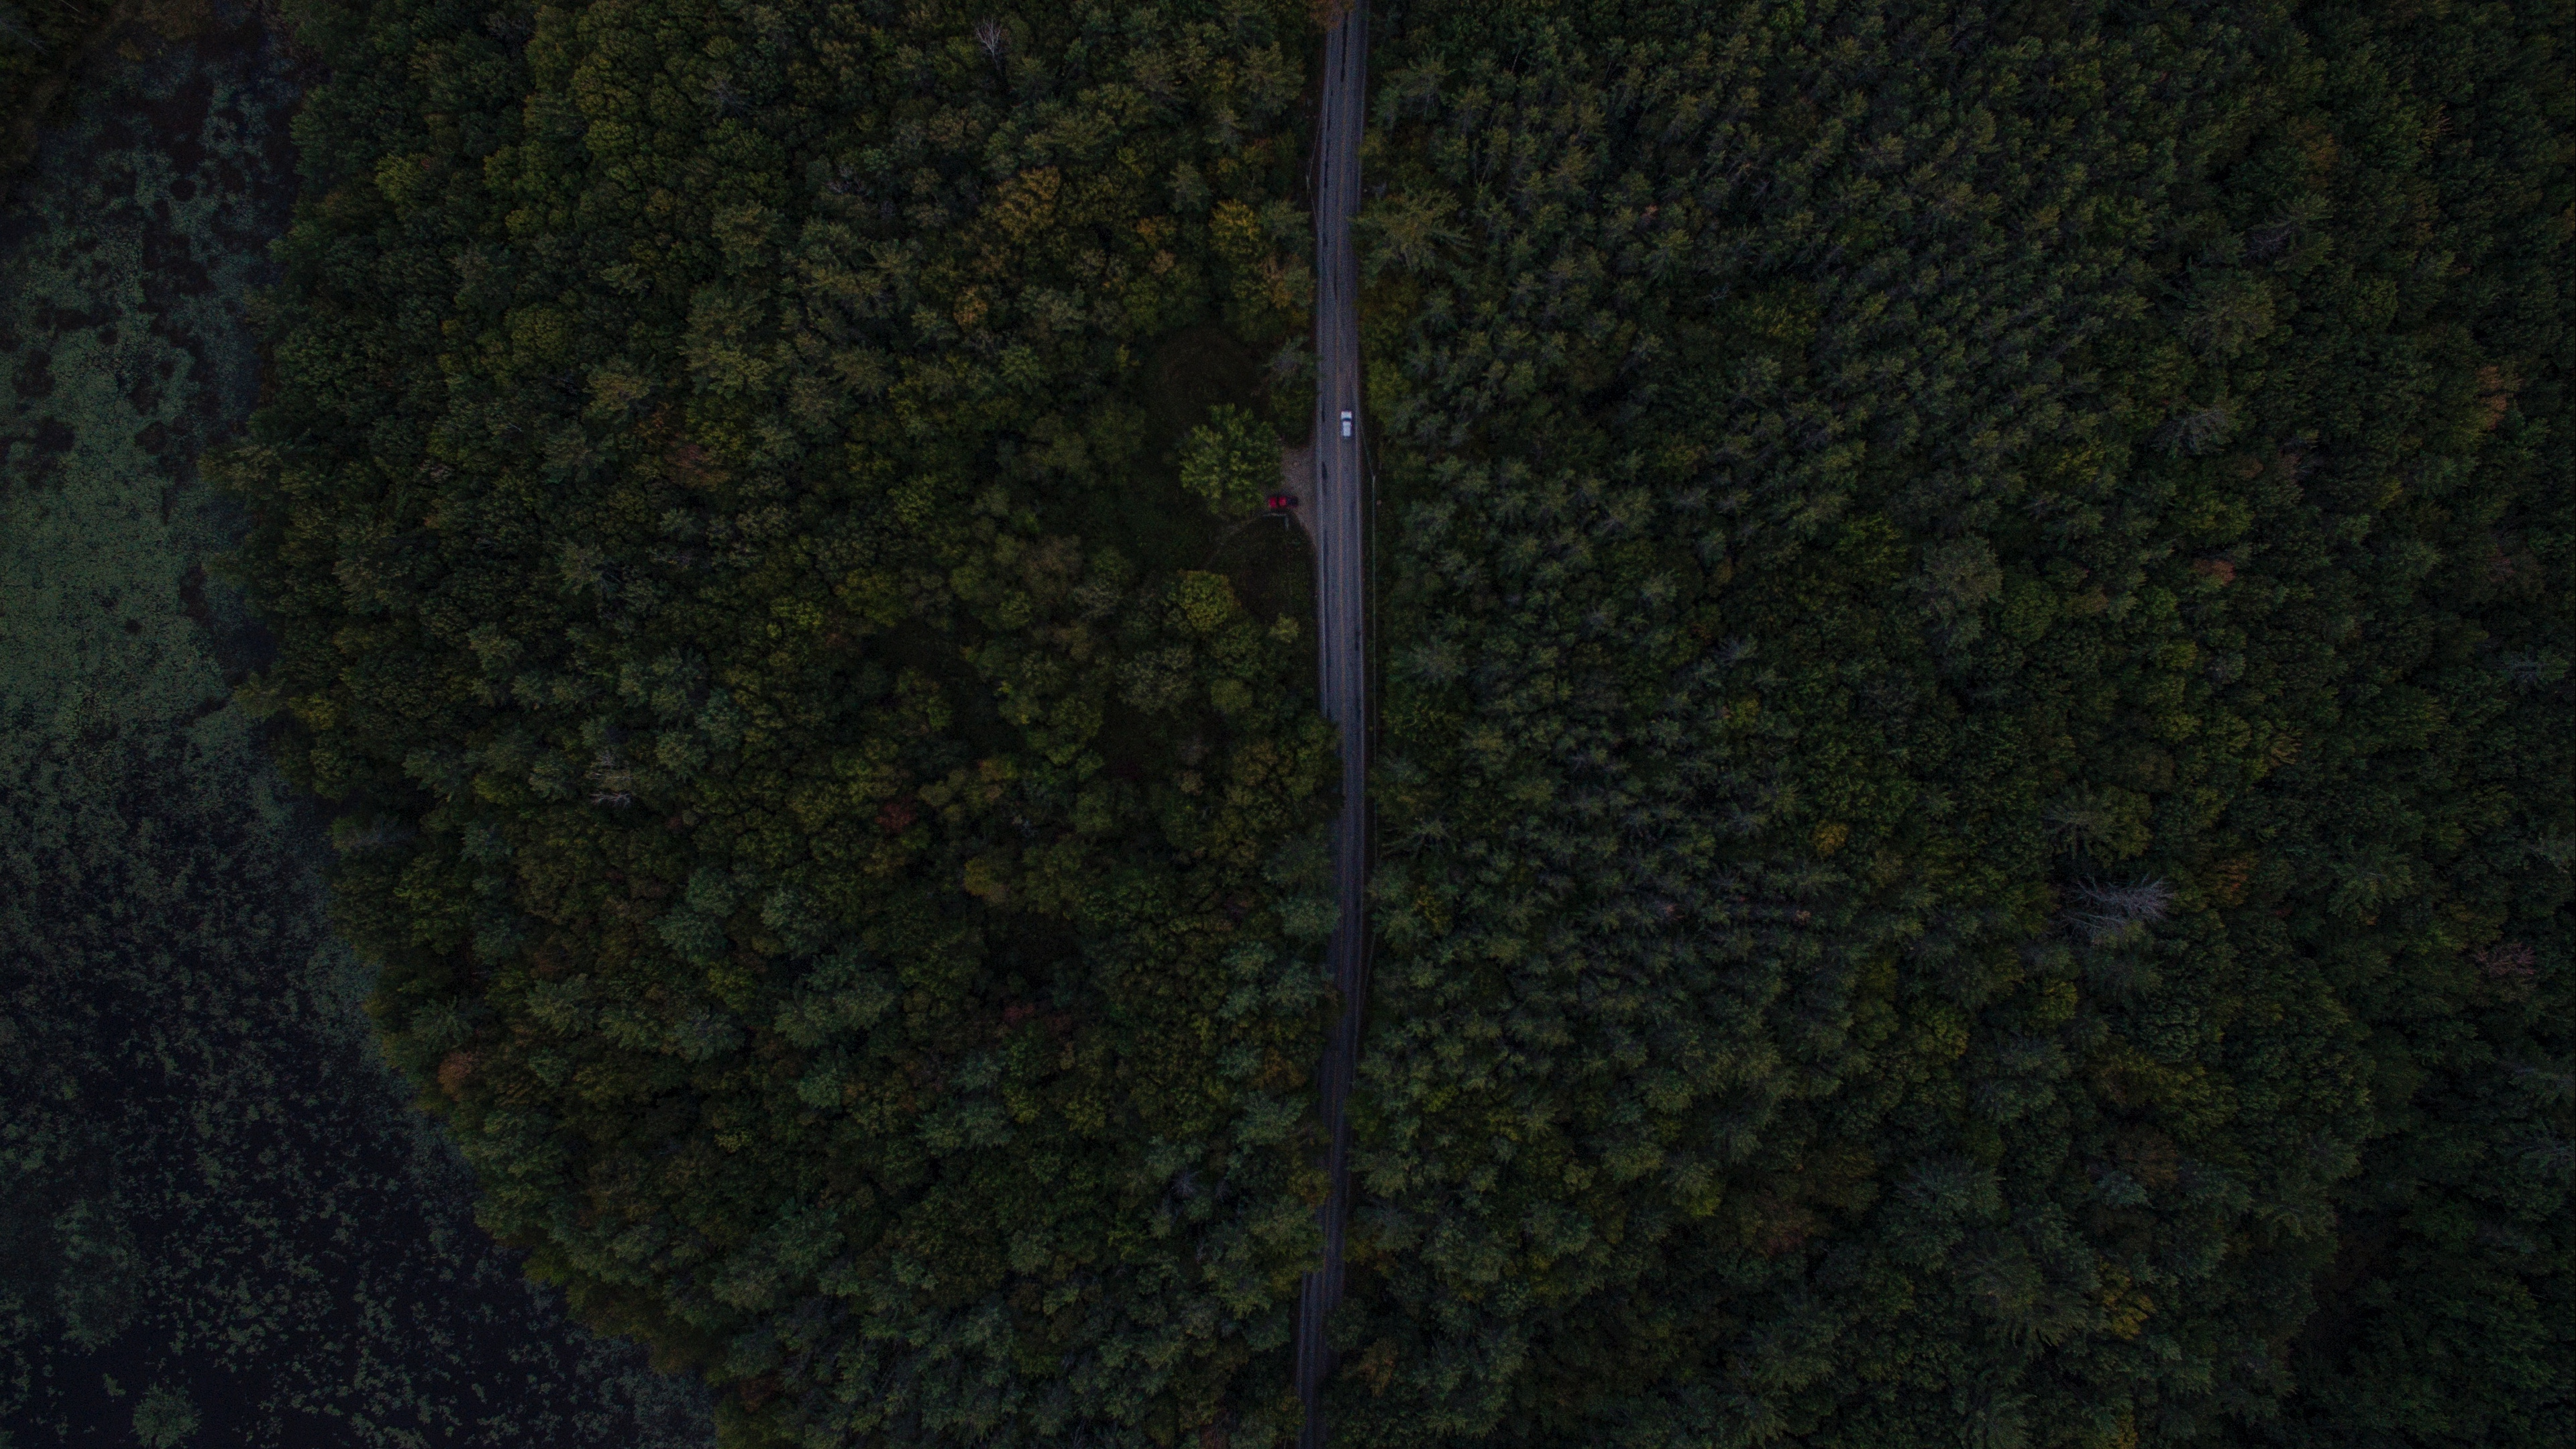 road trees aerial view forest 4k 1541115777 - road, trees, aerial view, forest 4k - Trees, Road, aerial view